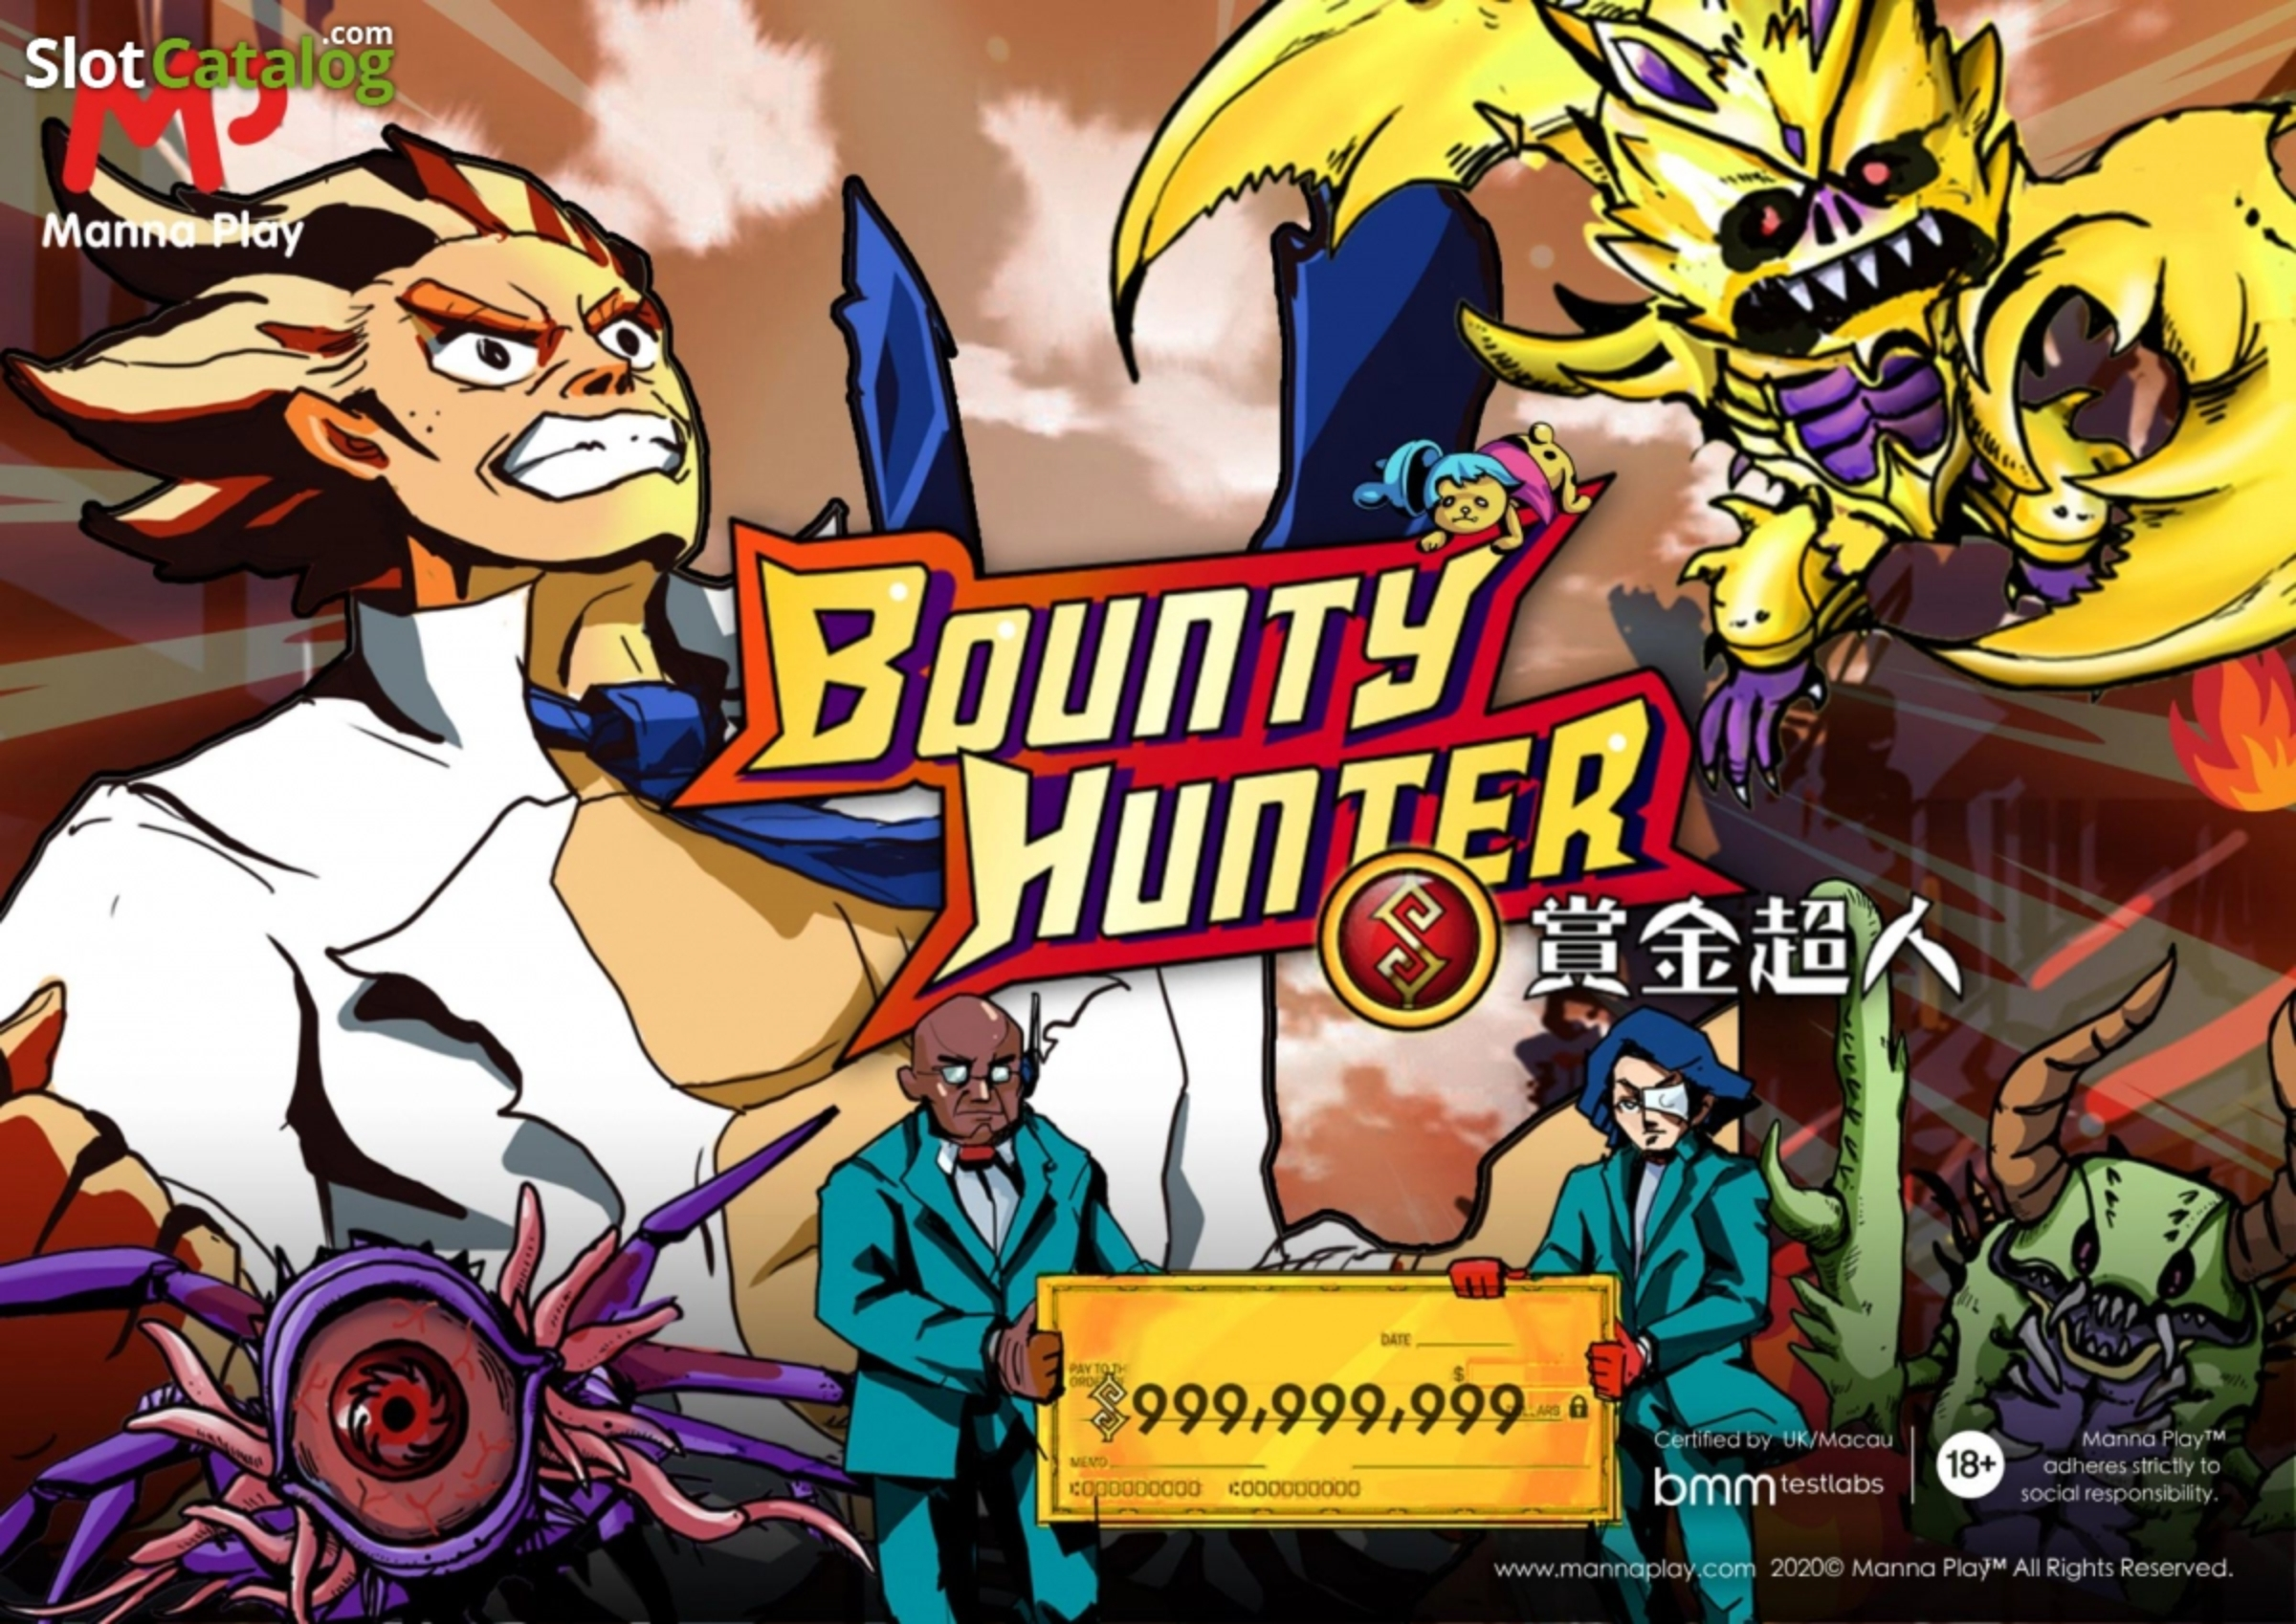 Se Bounty Hunter (Manna Play) Online Slot Demo Game, Manna Play